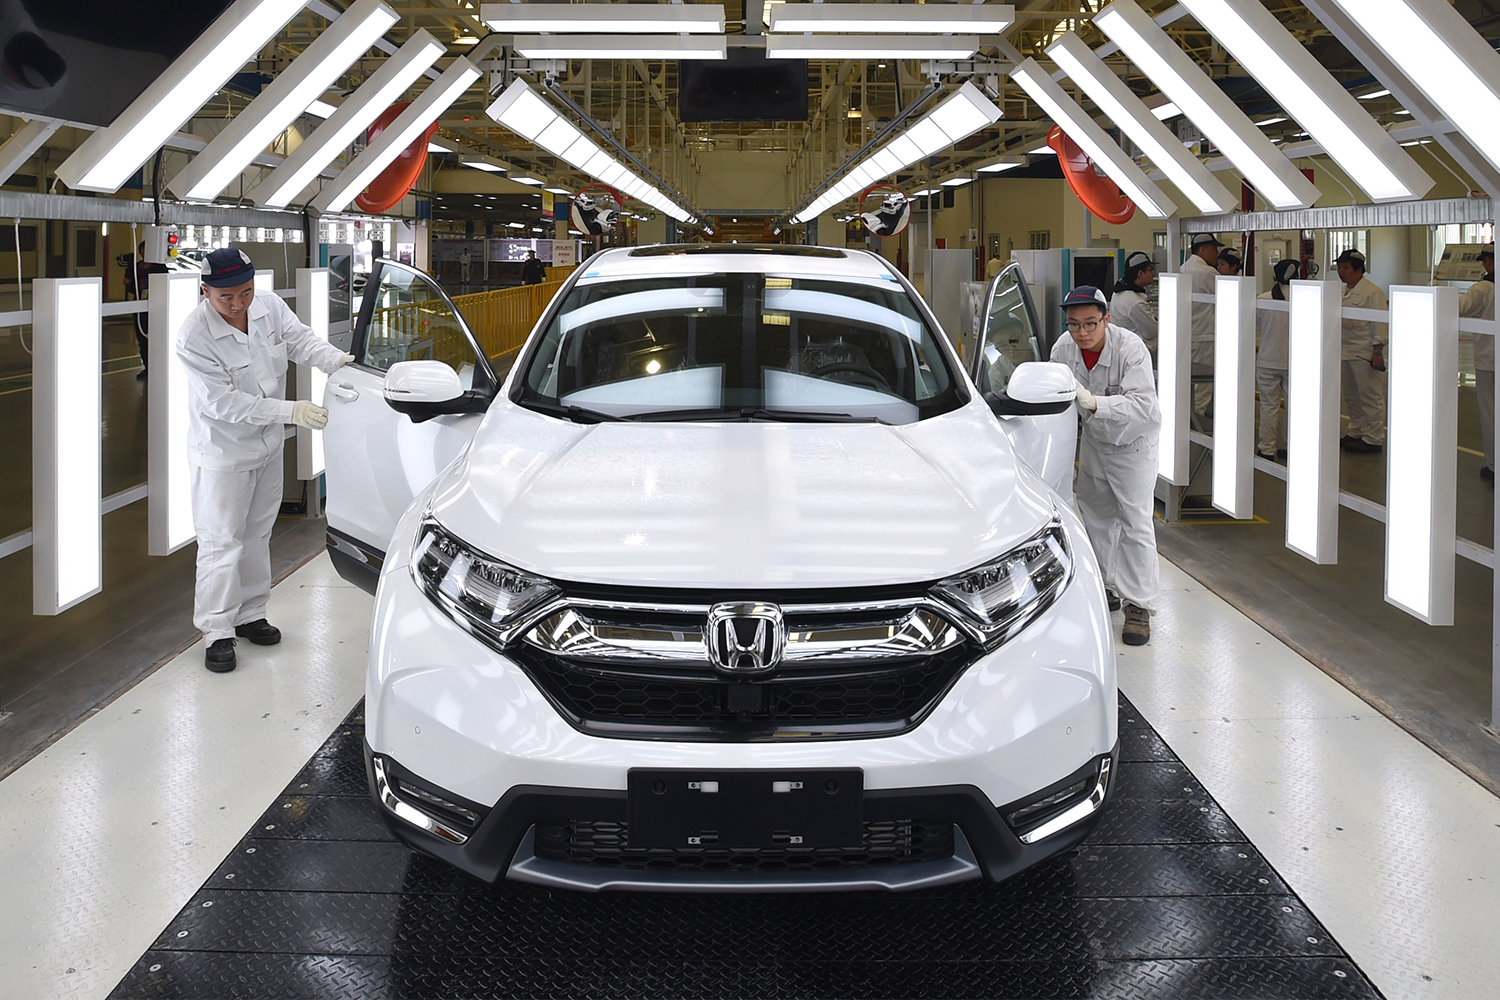 White Honda being inspected in Wuhan, China factory